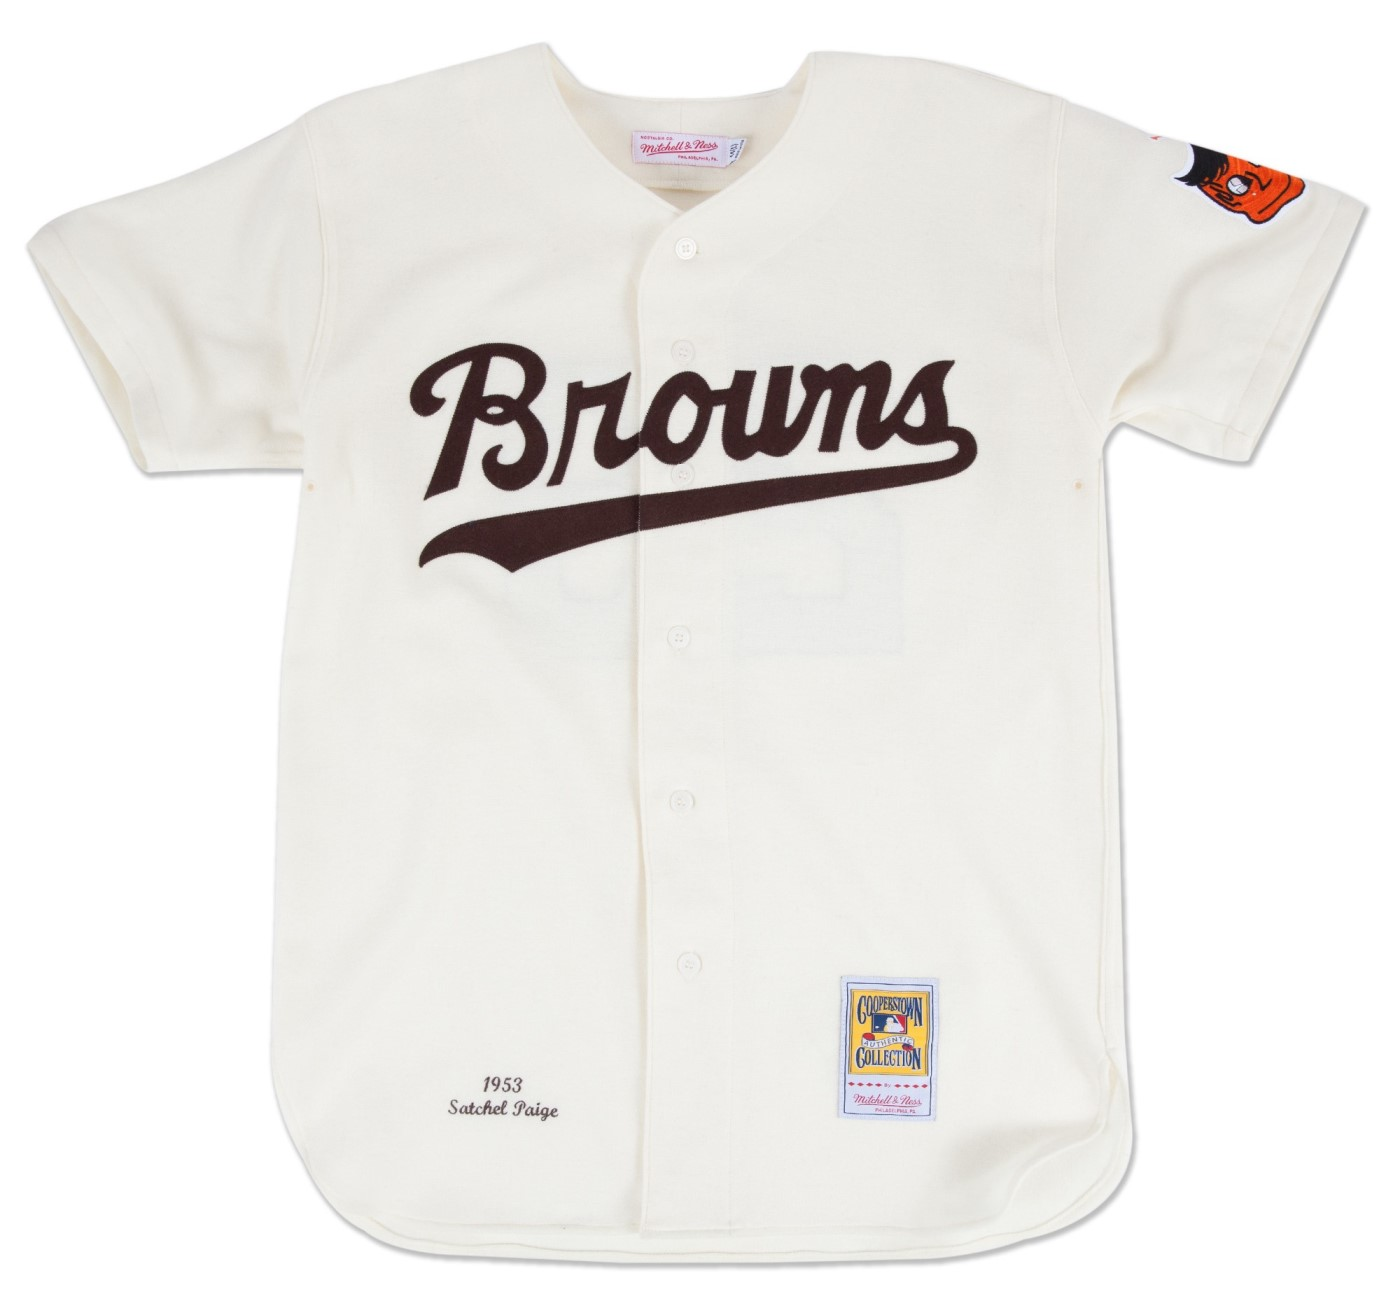 Satchel Paige St. Louis Browns Mitchell & Ness Authentic MLB 1953 Home Jersey